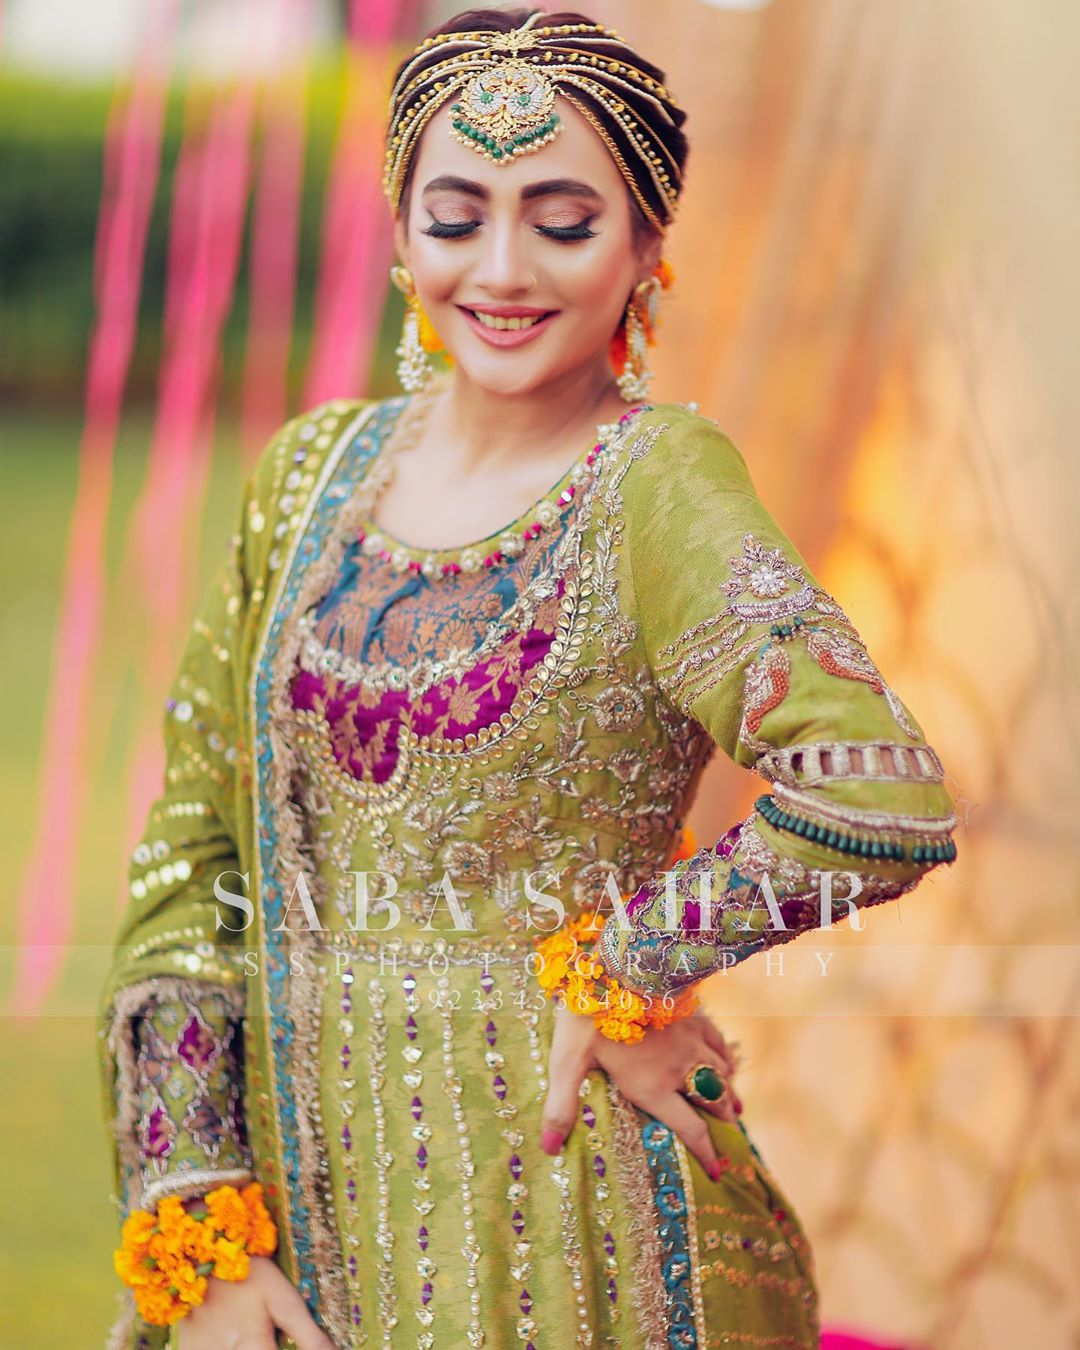 Suzain Fatima is Looking Gorgeous in her Latest Photo Shoot